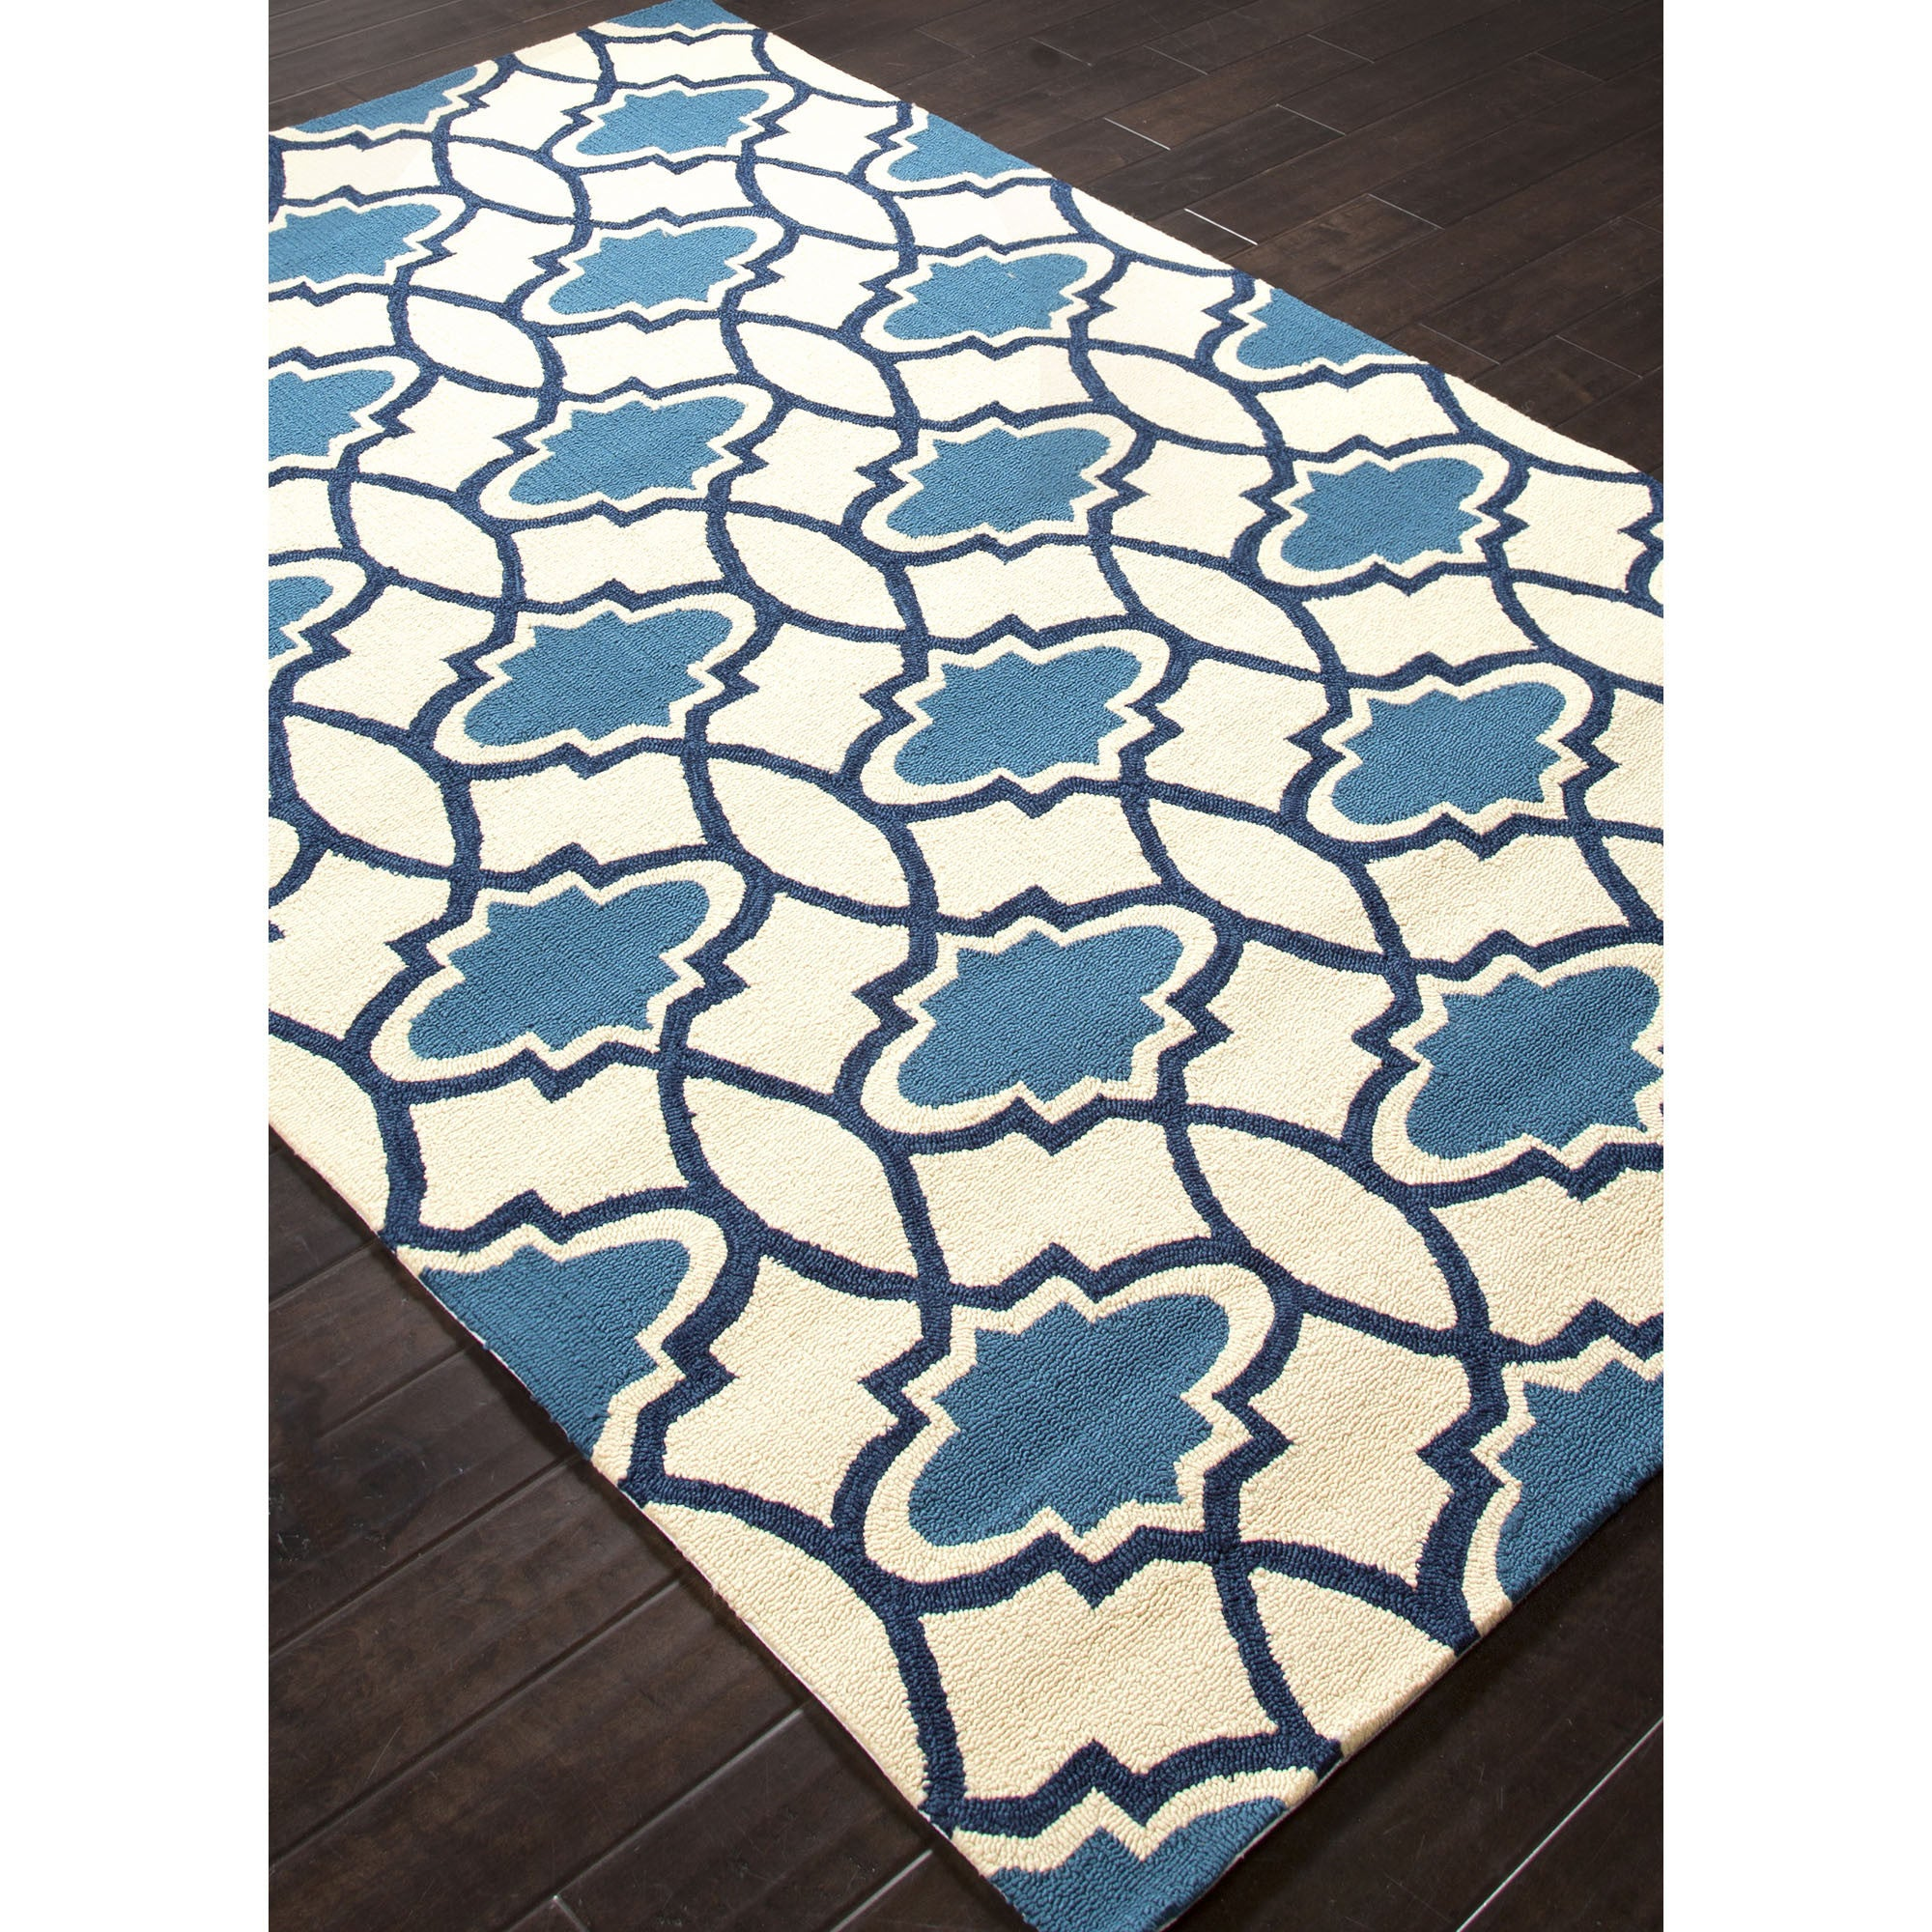 Jaipur Rugs IndoorOutdoor Moroccan Pattern Blue/Ivory Polypropylene Area Rug BA38 (Rectangle)